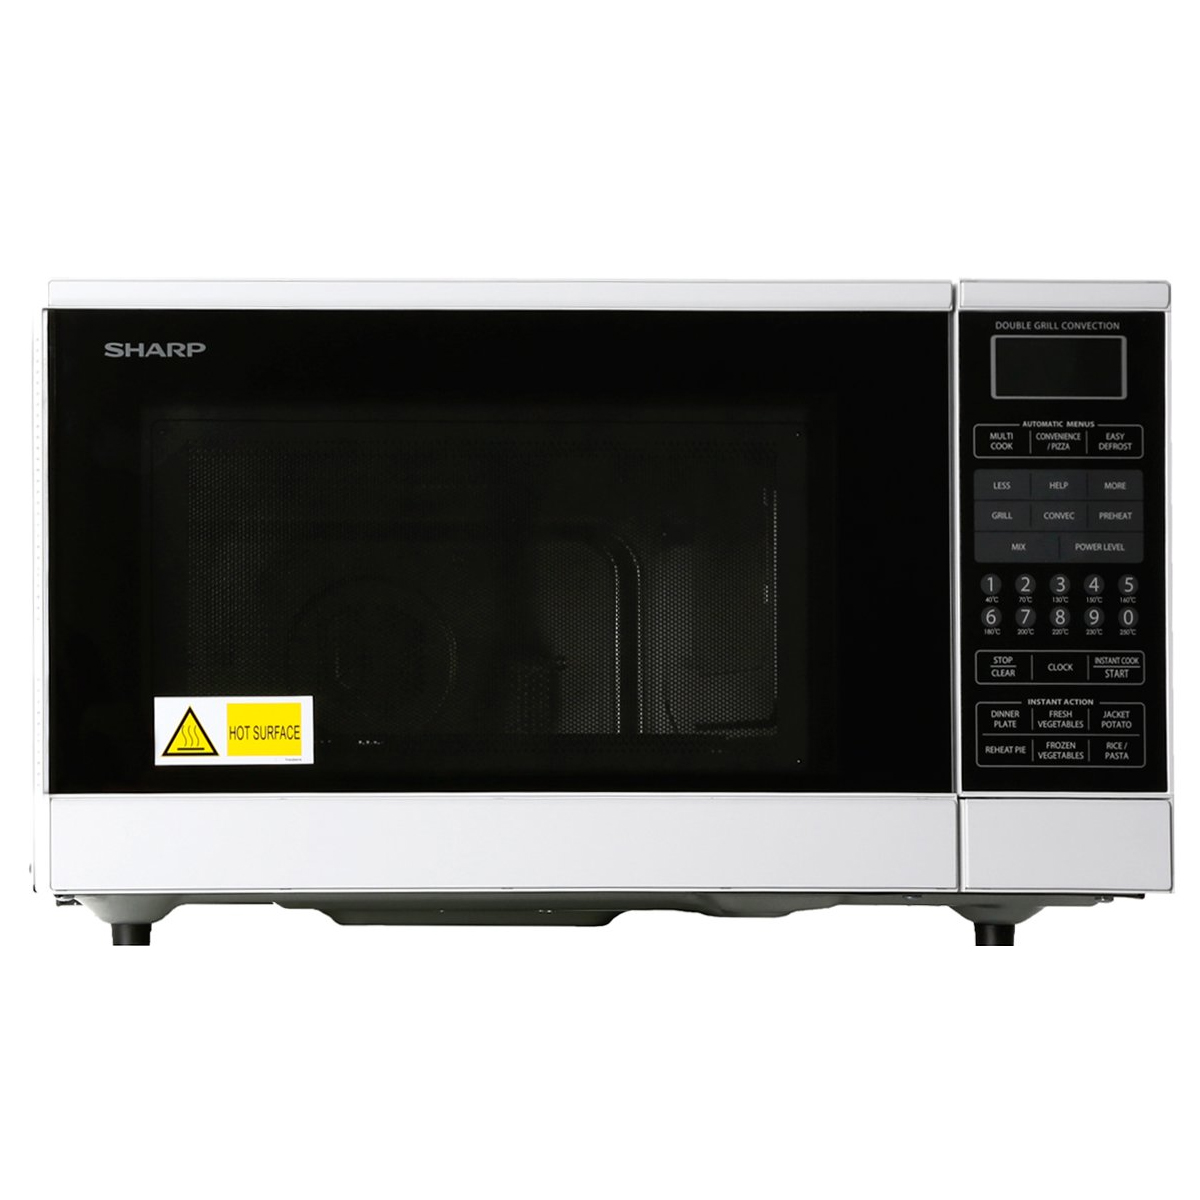 Sharp R890NW 20L Convection Microwave 900W